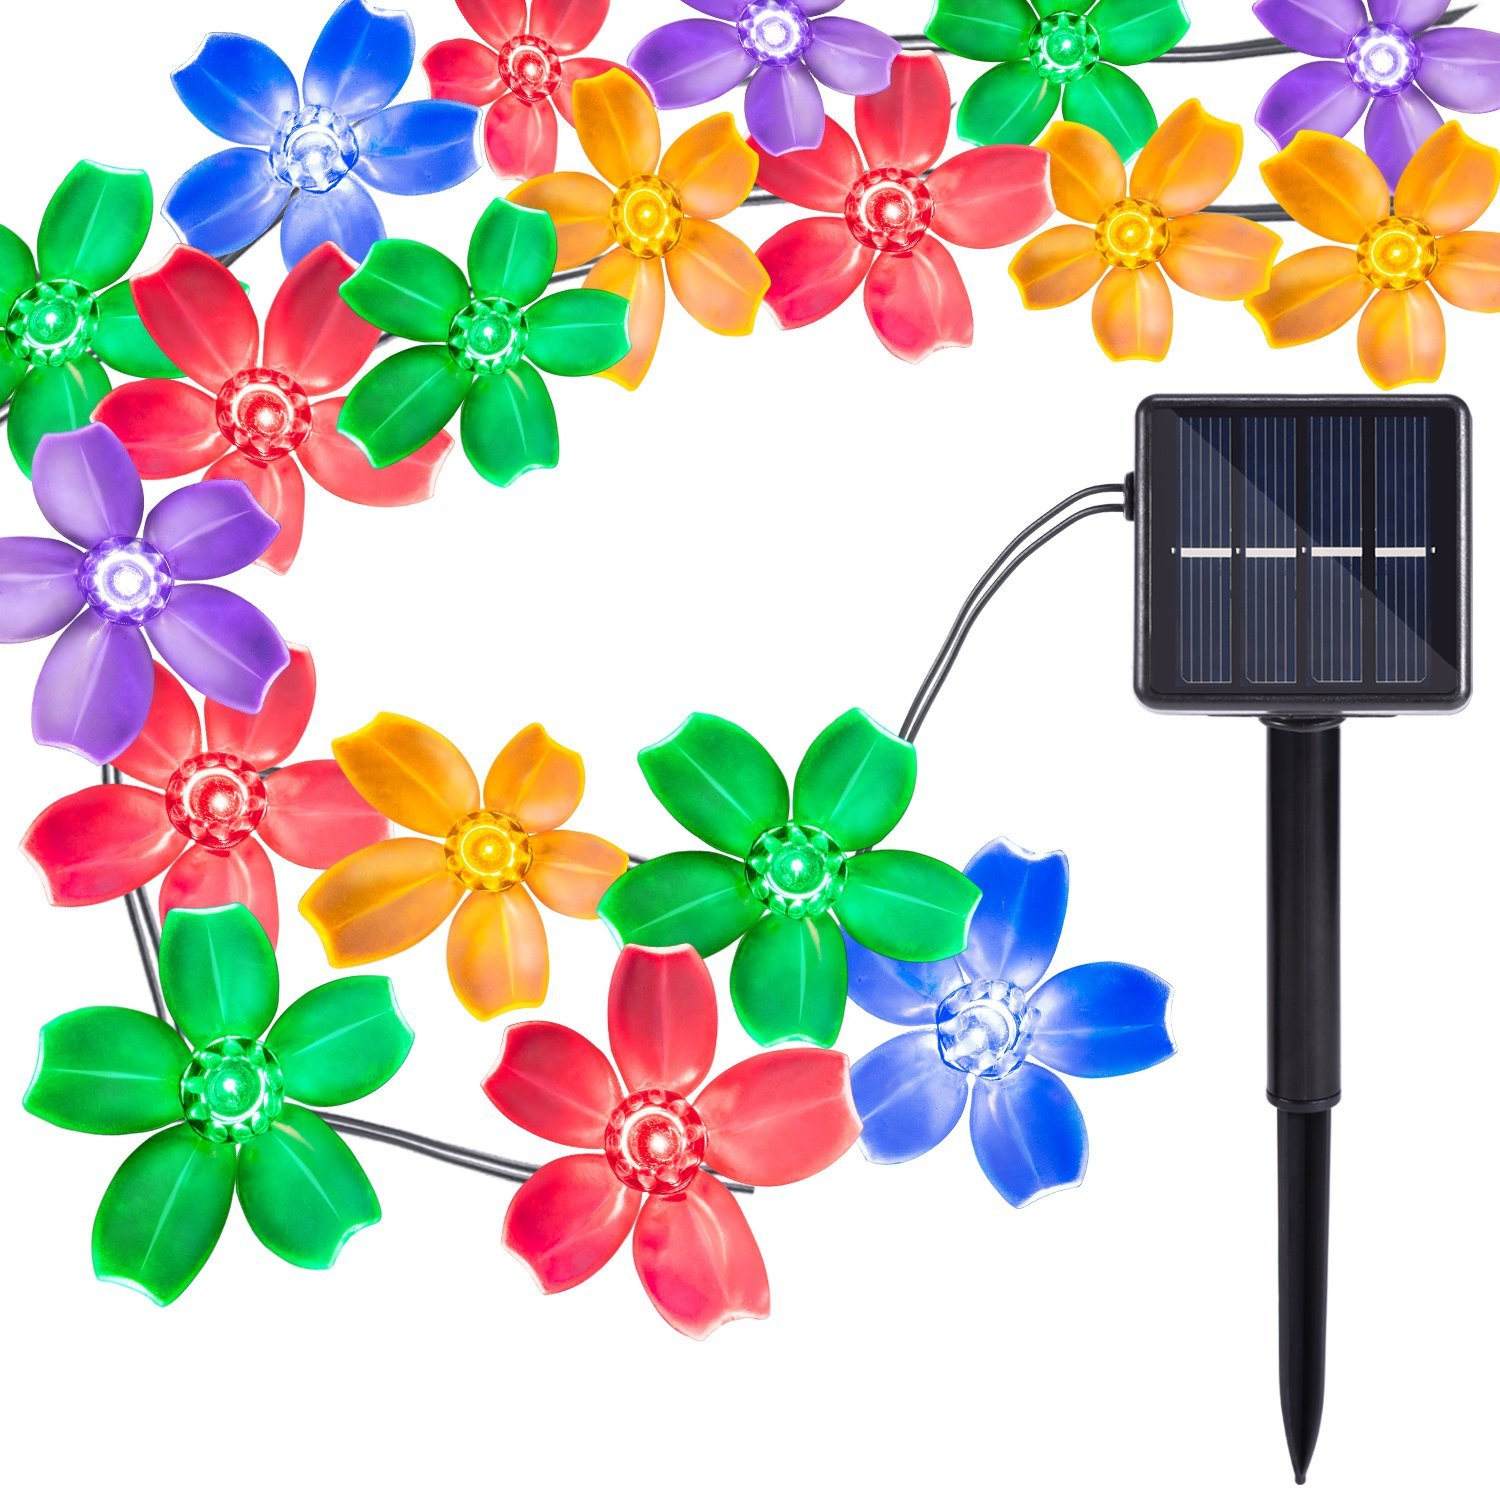 Oak Leaf 30 LED Solar Powered 20ft Multi-color Waterproof Decorative String Lights Christmas Led Fairy Blossom Flower Light For Outdoor, Party,Wedding,Garden,Tree